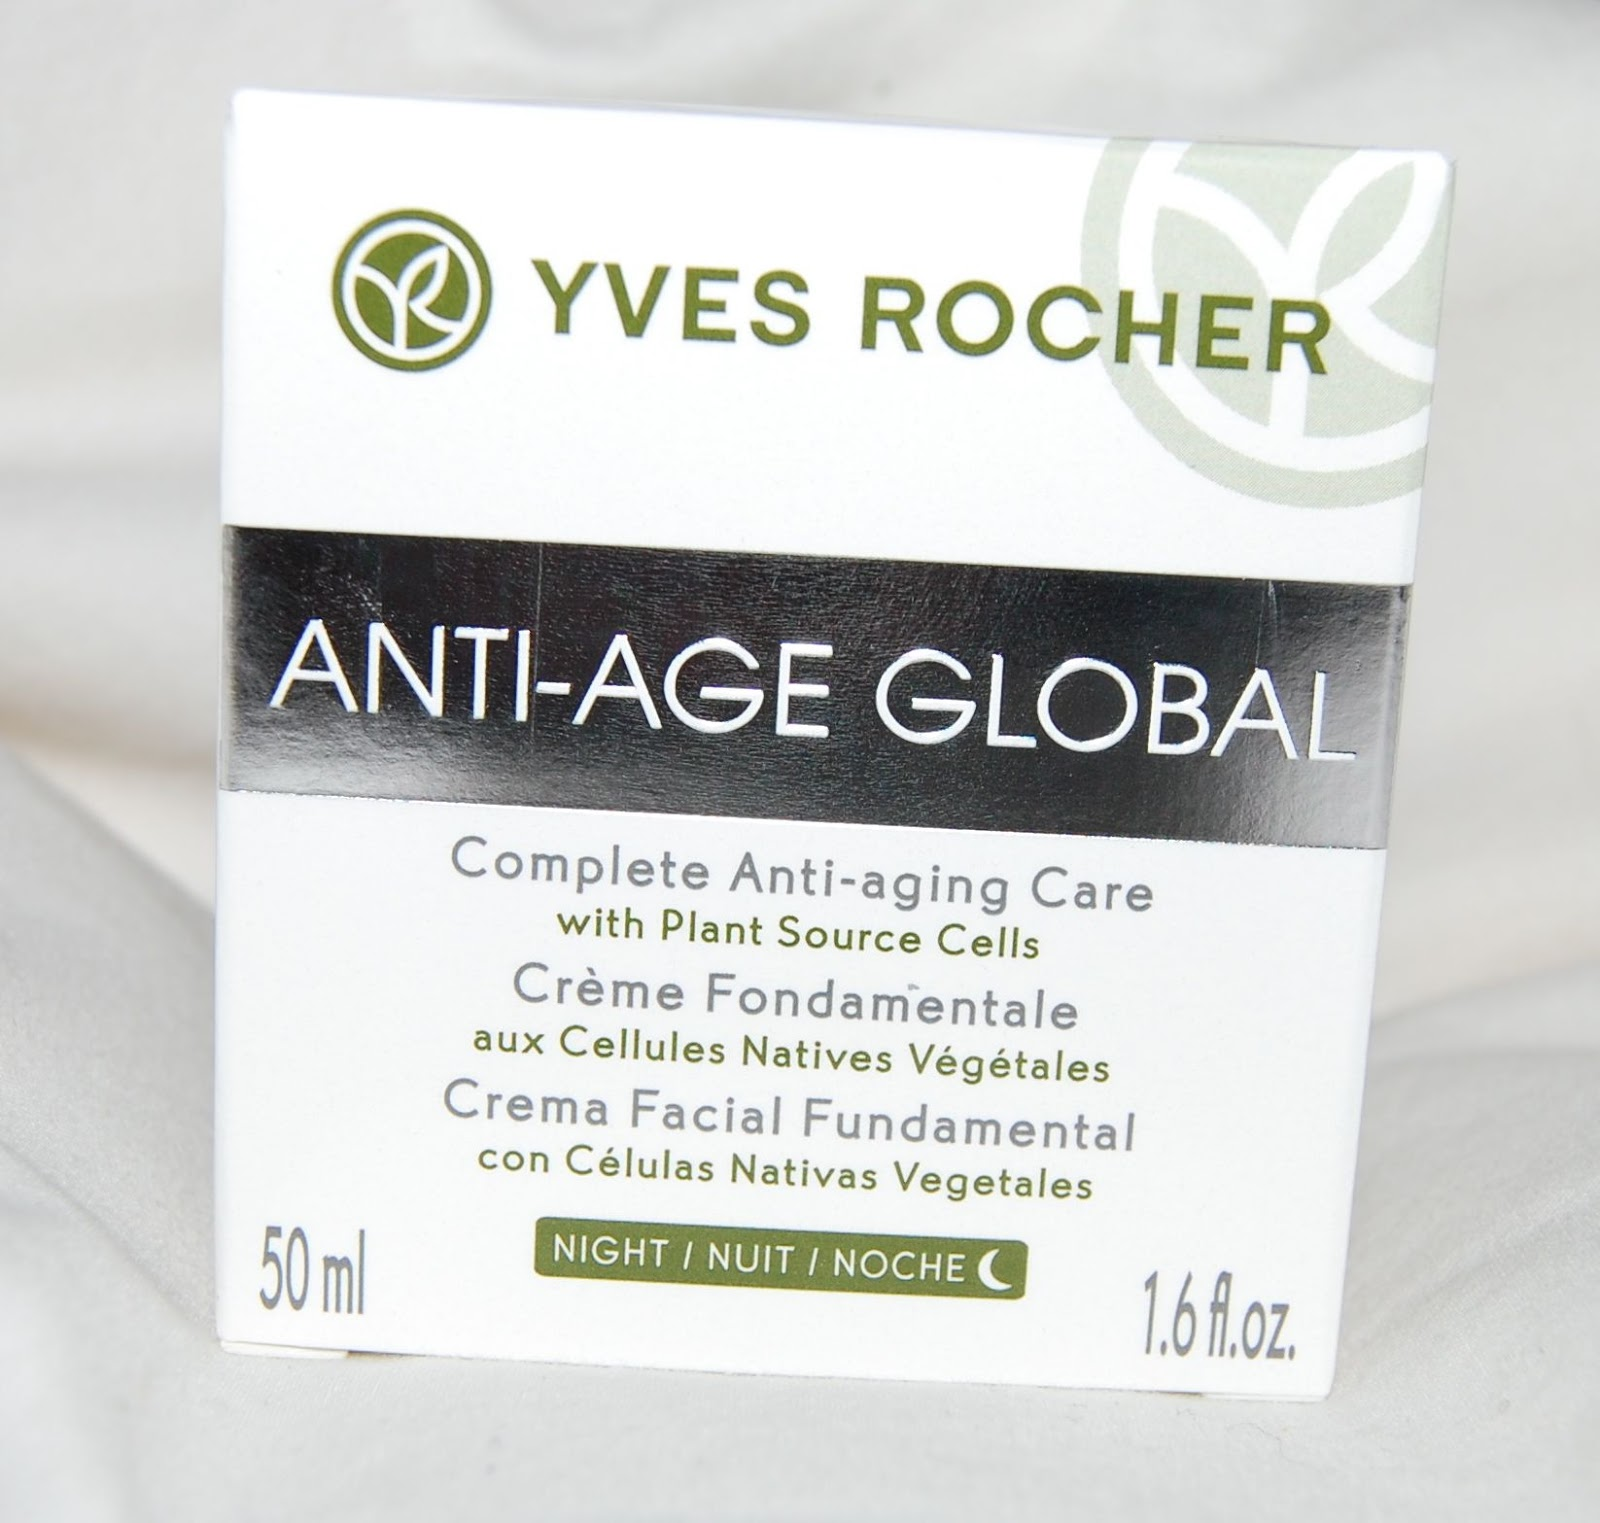 beauty squared yves rocher anti age global review and photos. Black Bedroom Furniture Sets. Home Design Ideas